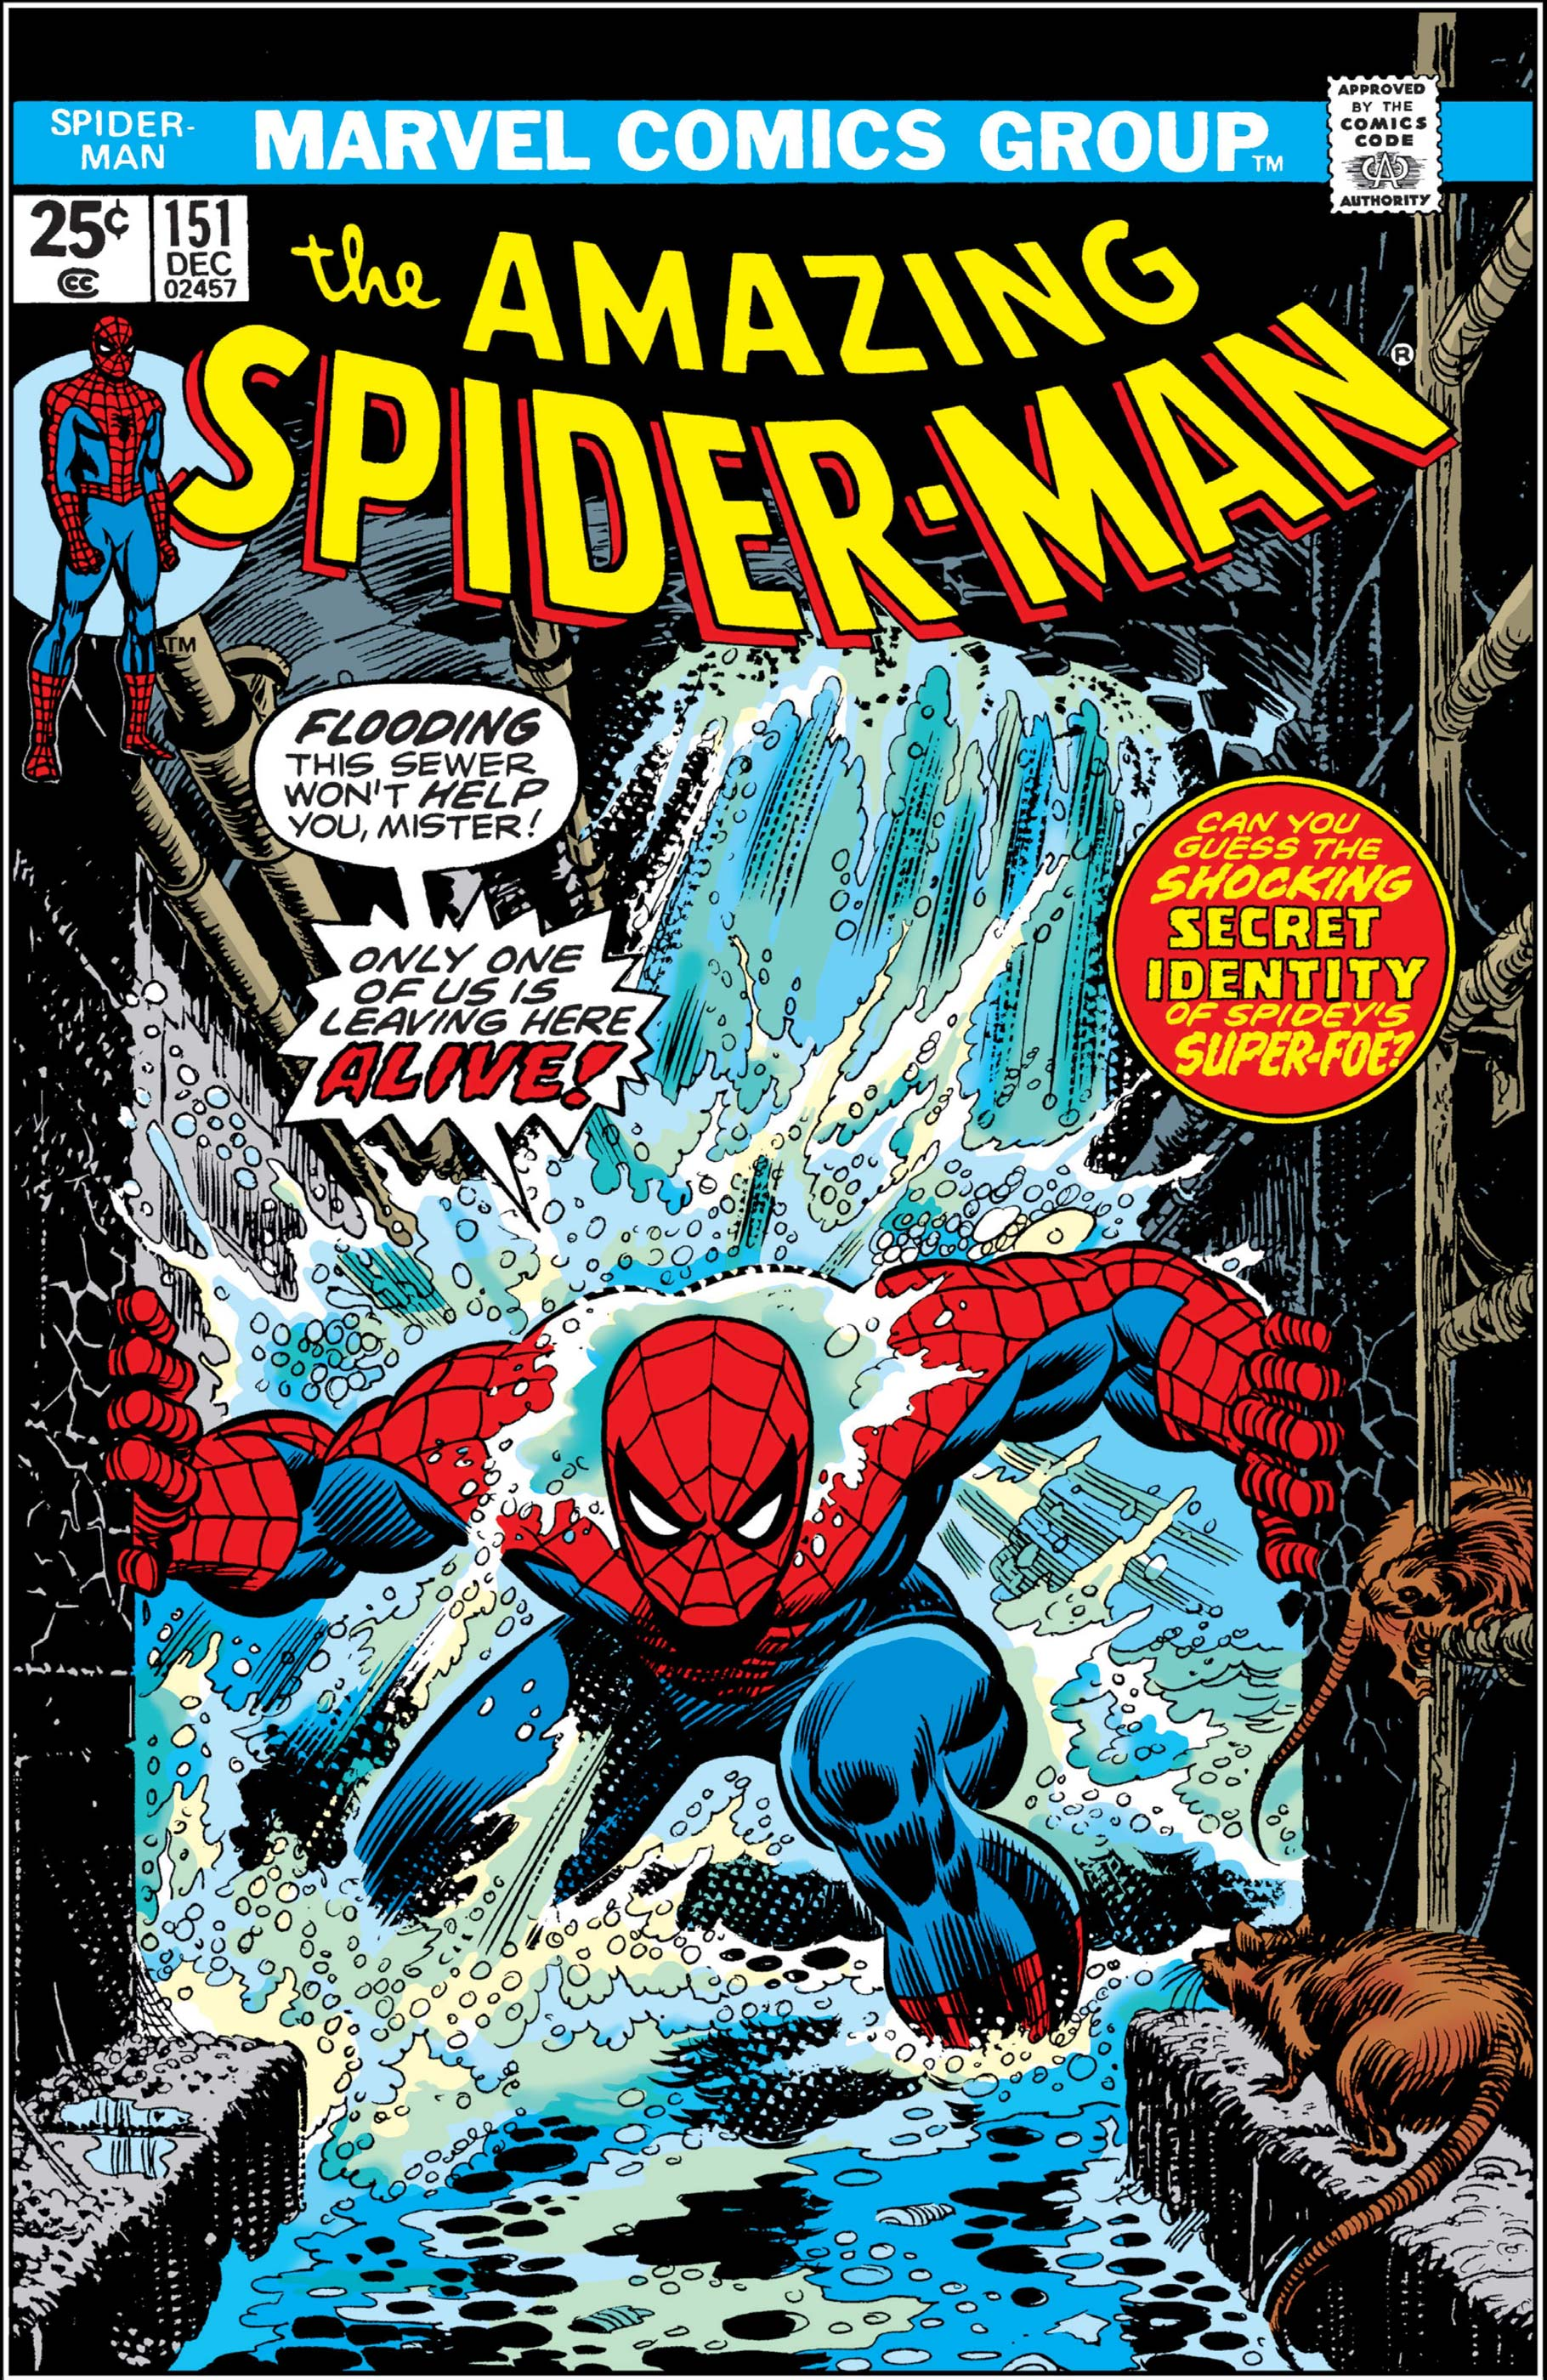 The Amazing Spider-Man (1963) #151